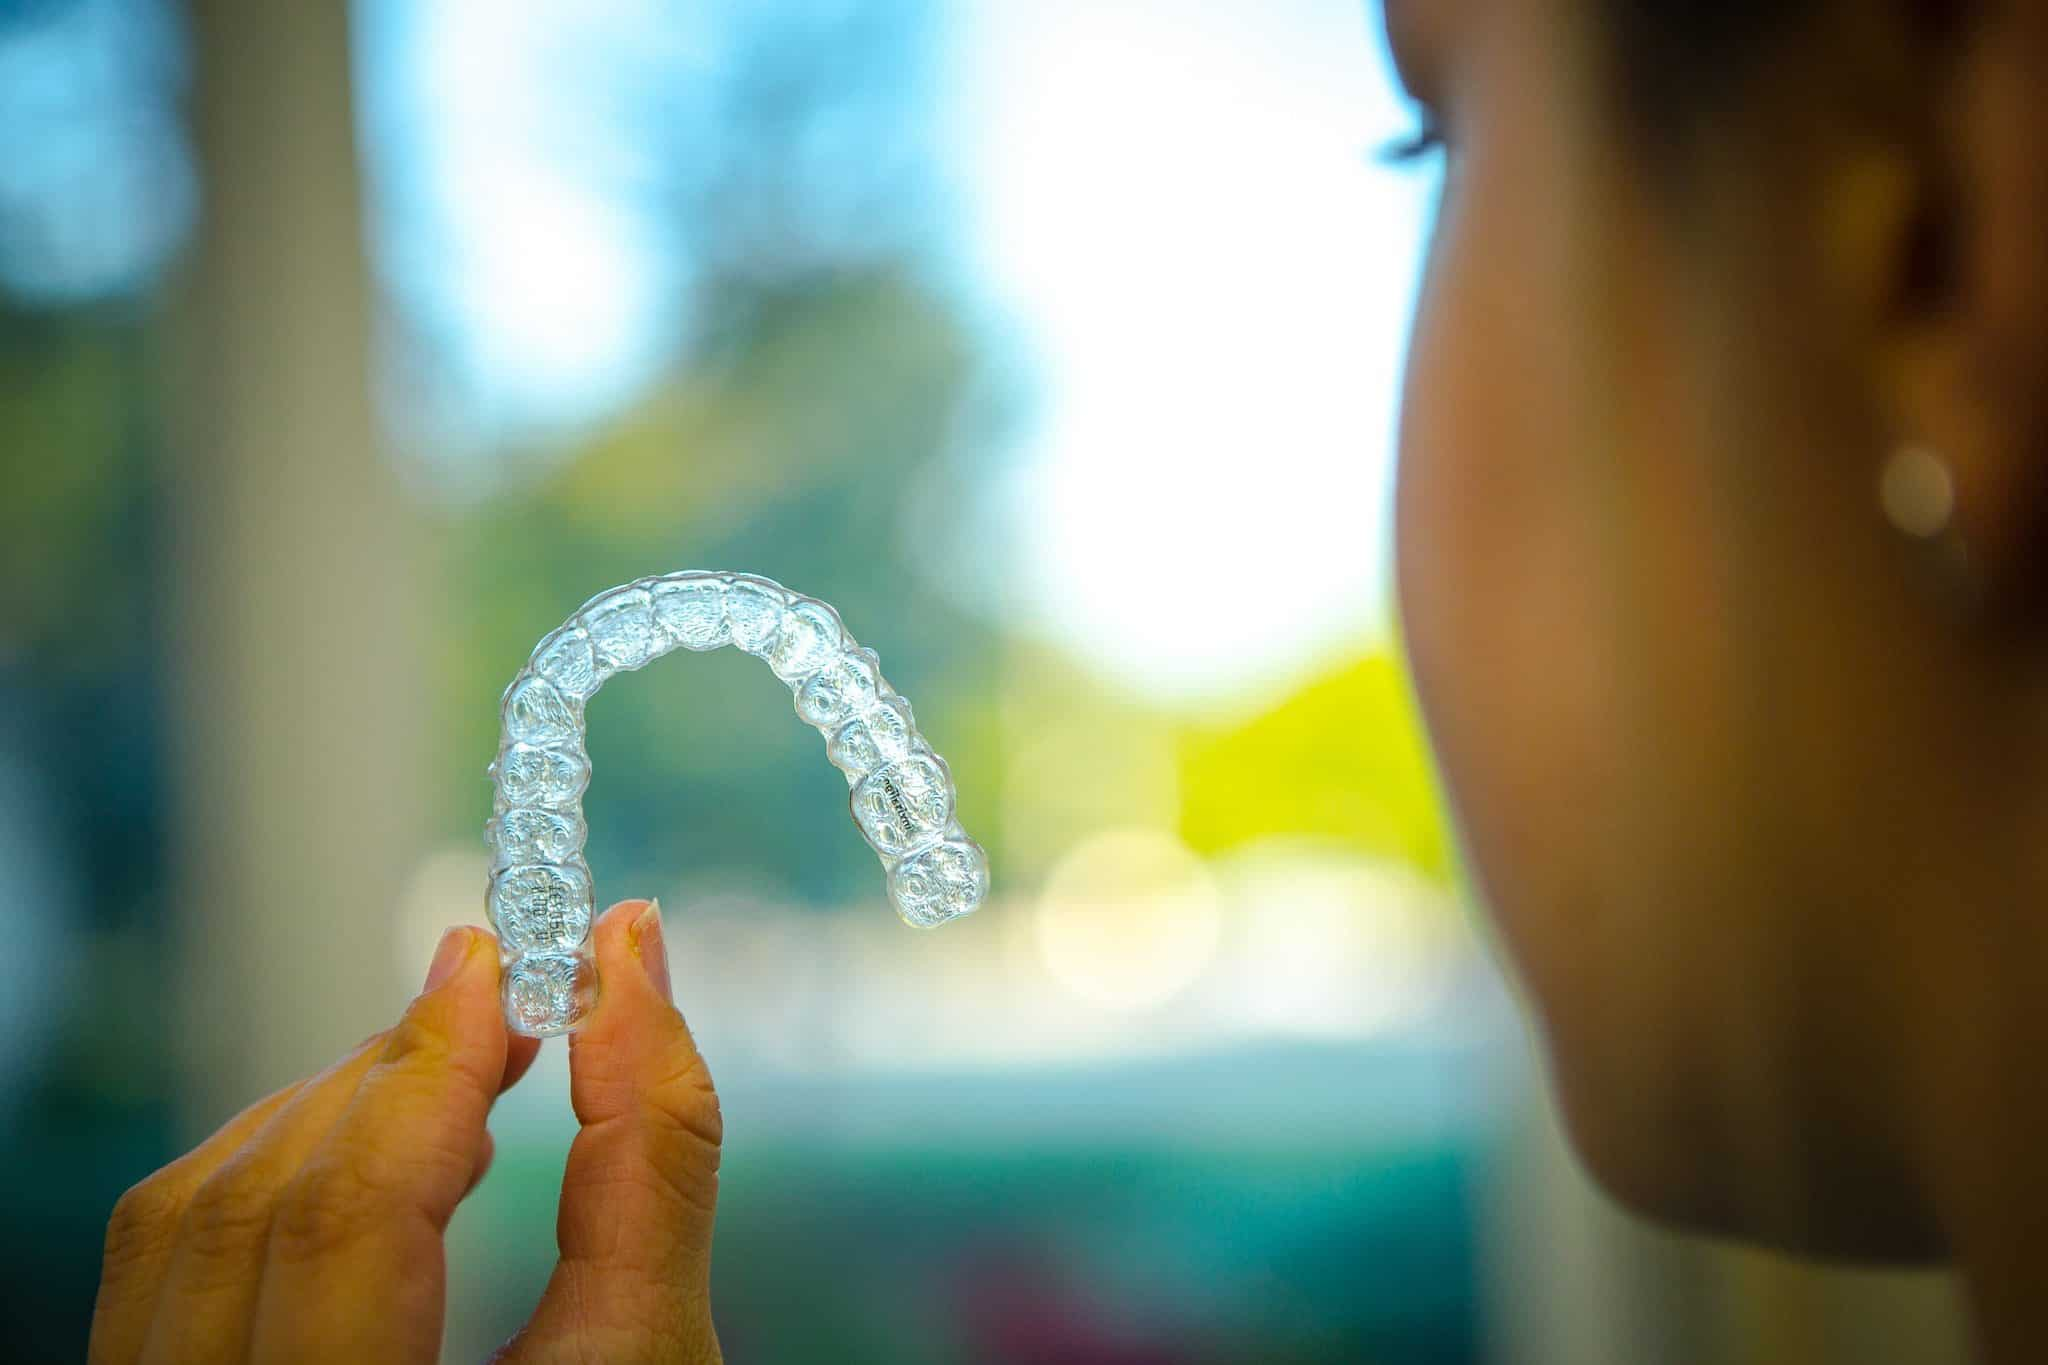 Appel Orthodontics Philadelphia Orthodontics Invisalign 6 of 7 2048x1365 - Invisalign and Invisalign Teen Top 1% Provider